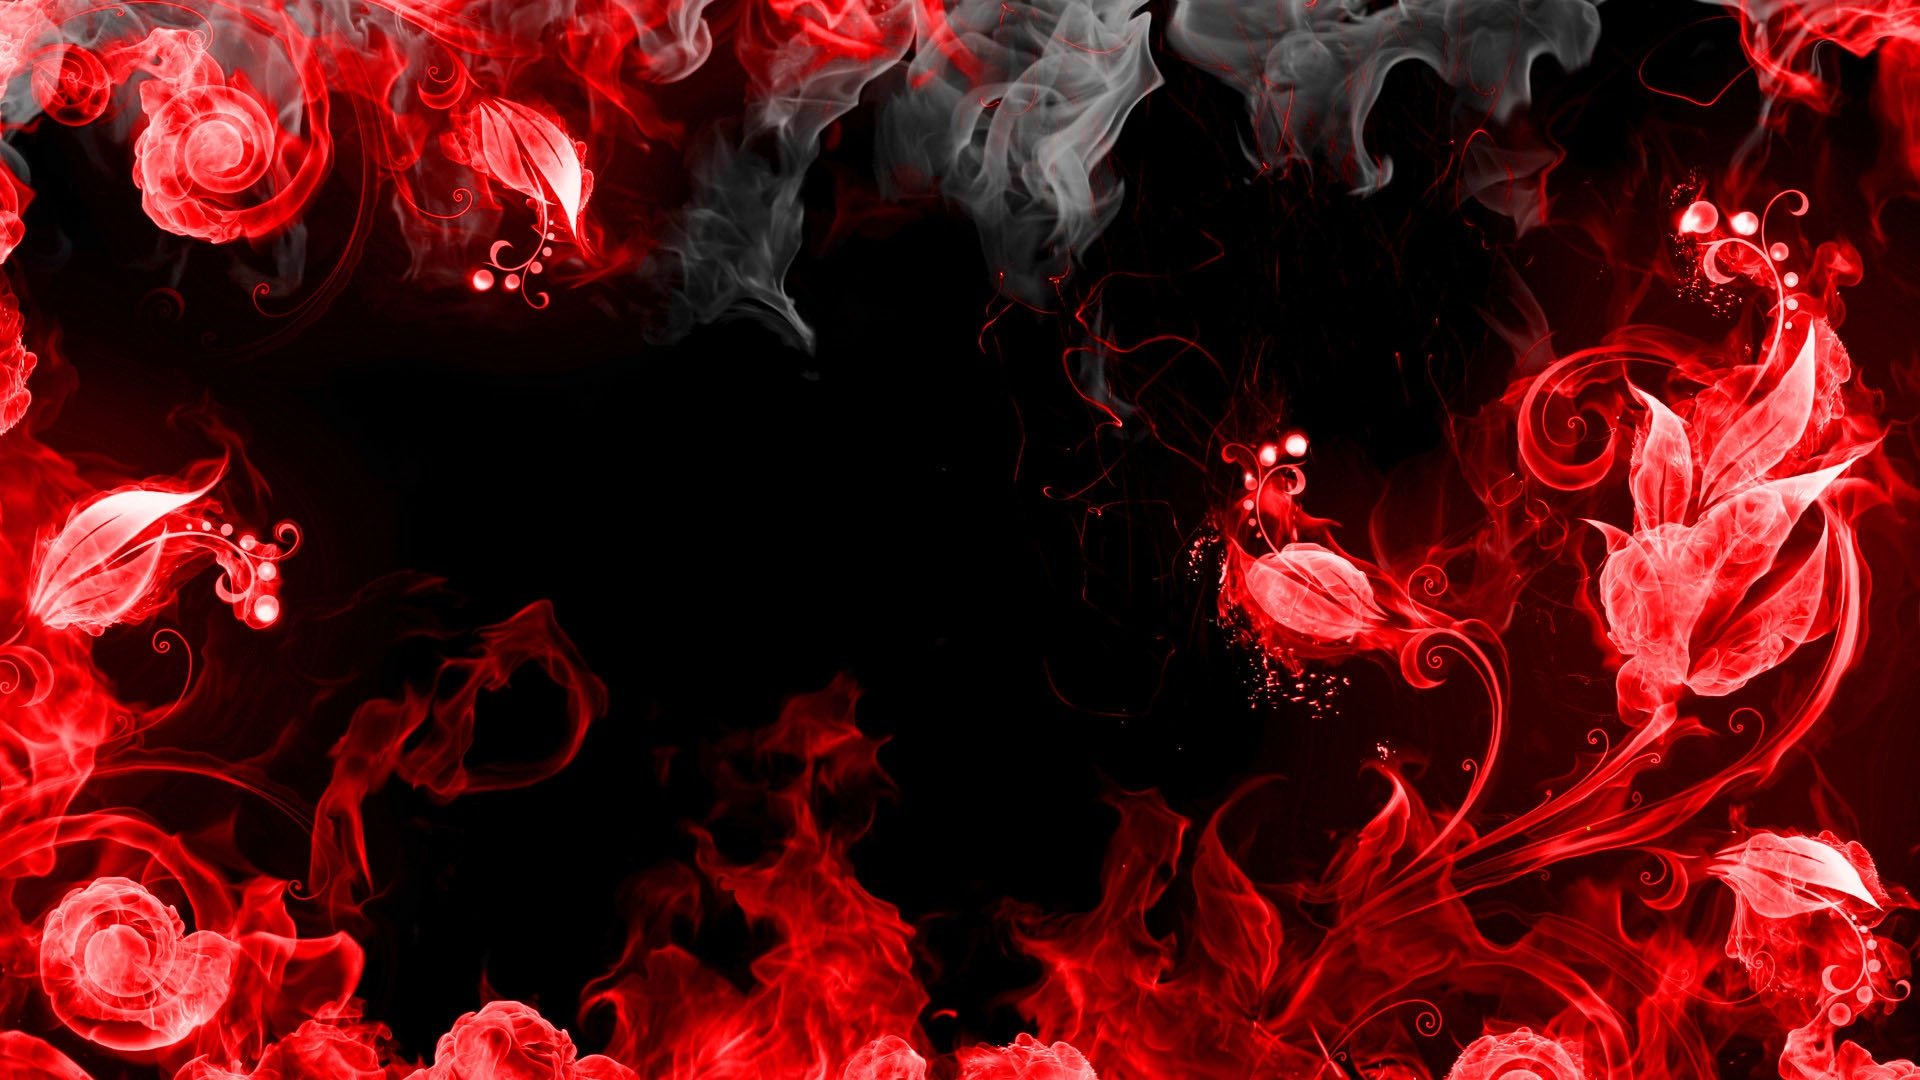 Download Wallpaper 1920x1080 abstraction red smoke black Full HD 1920x1080